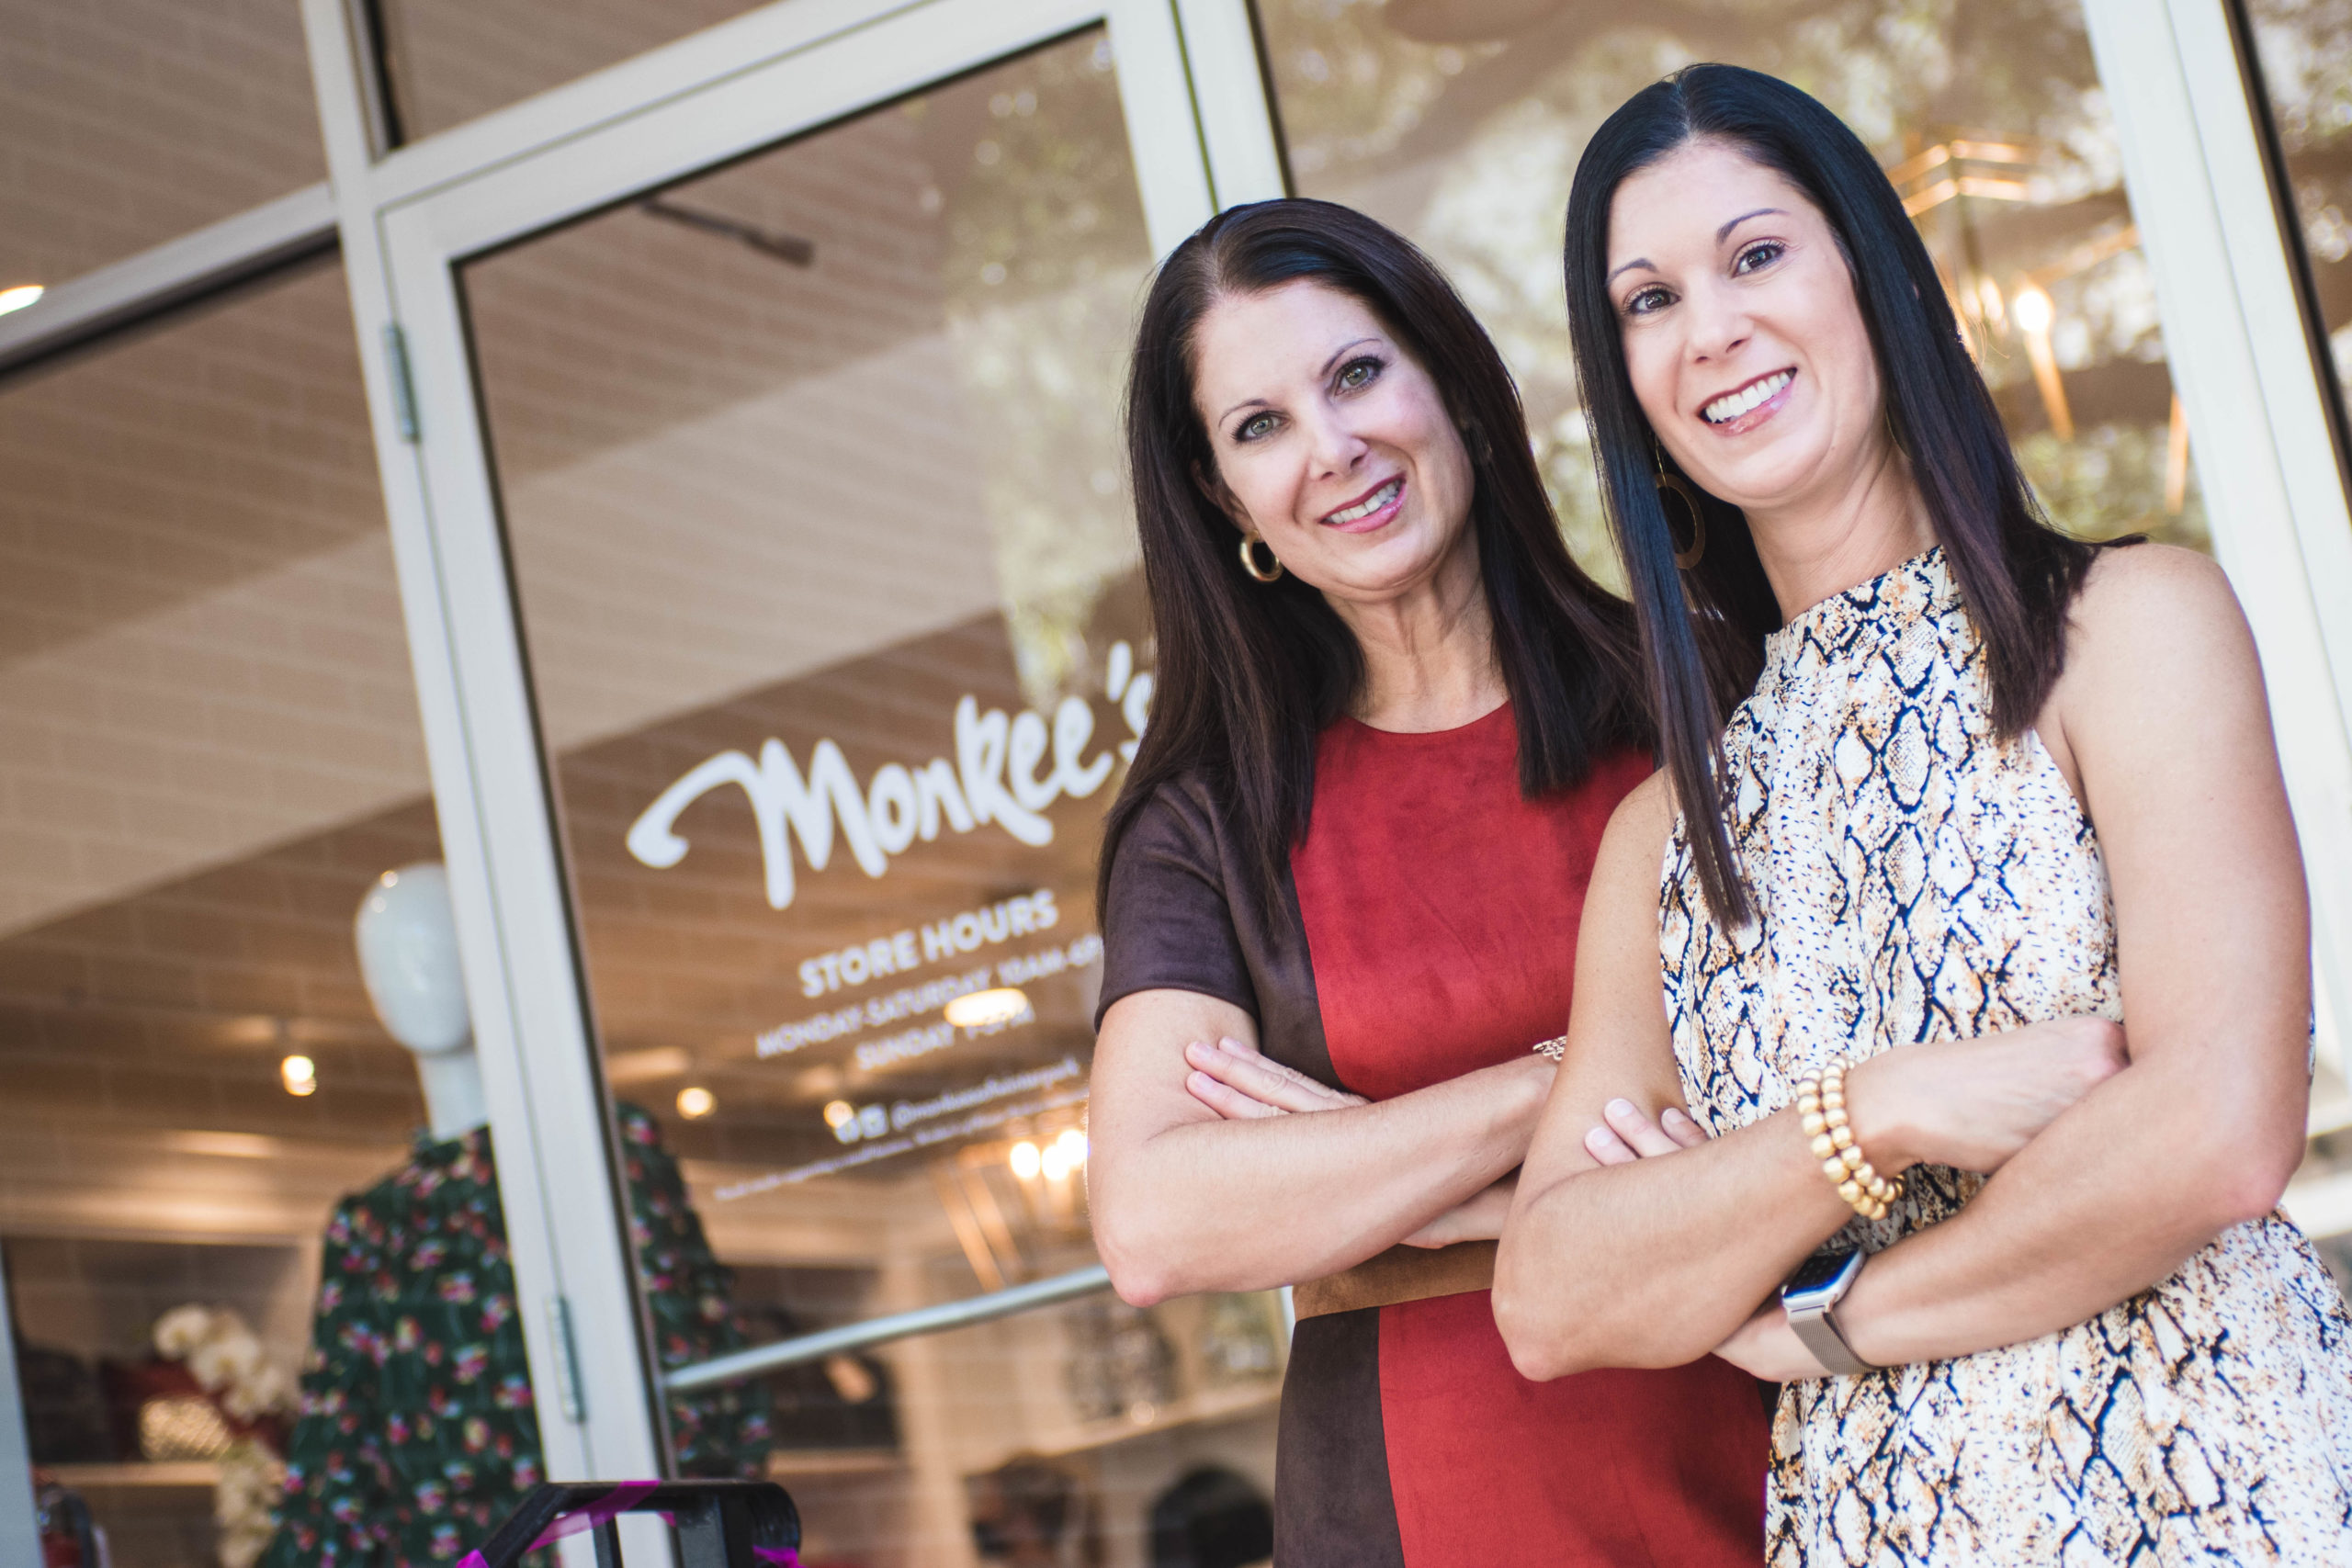 Monkee's of Winter Park co-owners at their store in Hannibal Square.